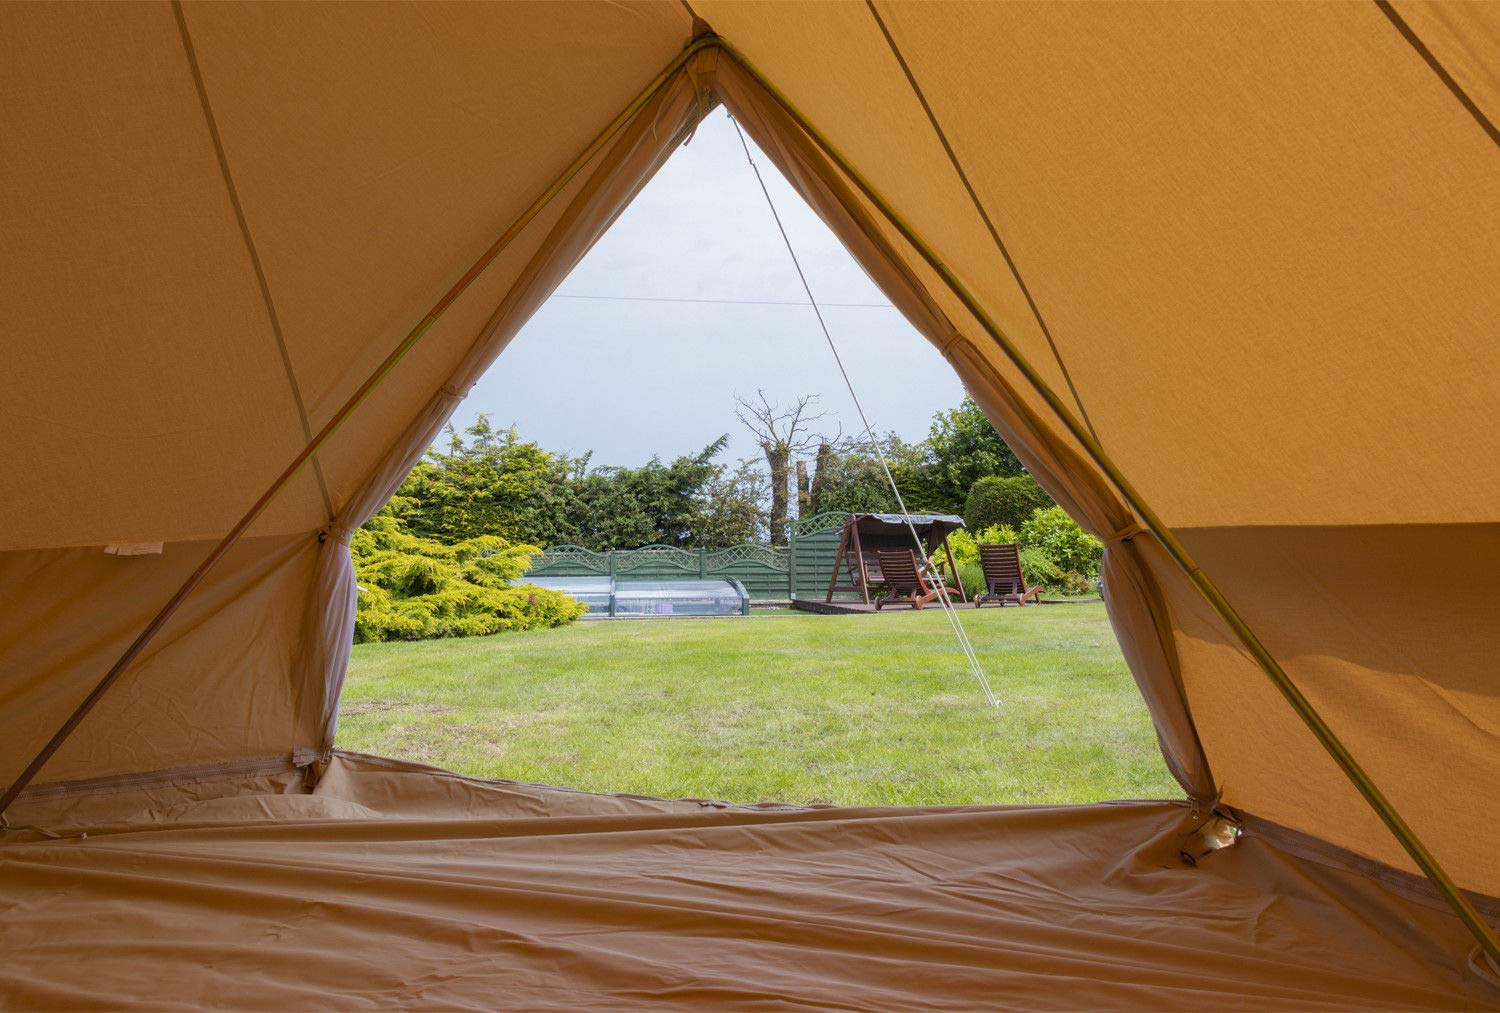 Camping Glamping Luxury Teepee Andes 4m 100/% Cotton Canvas Bell Tent With Heavy Duty Zipped In Groundsheet Festival